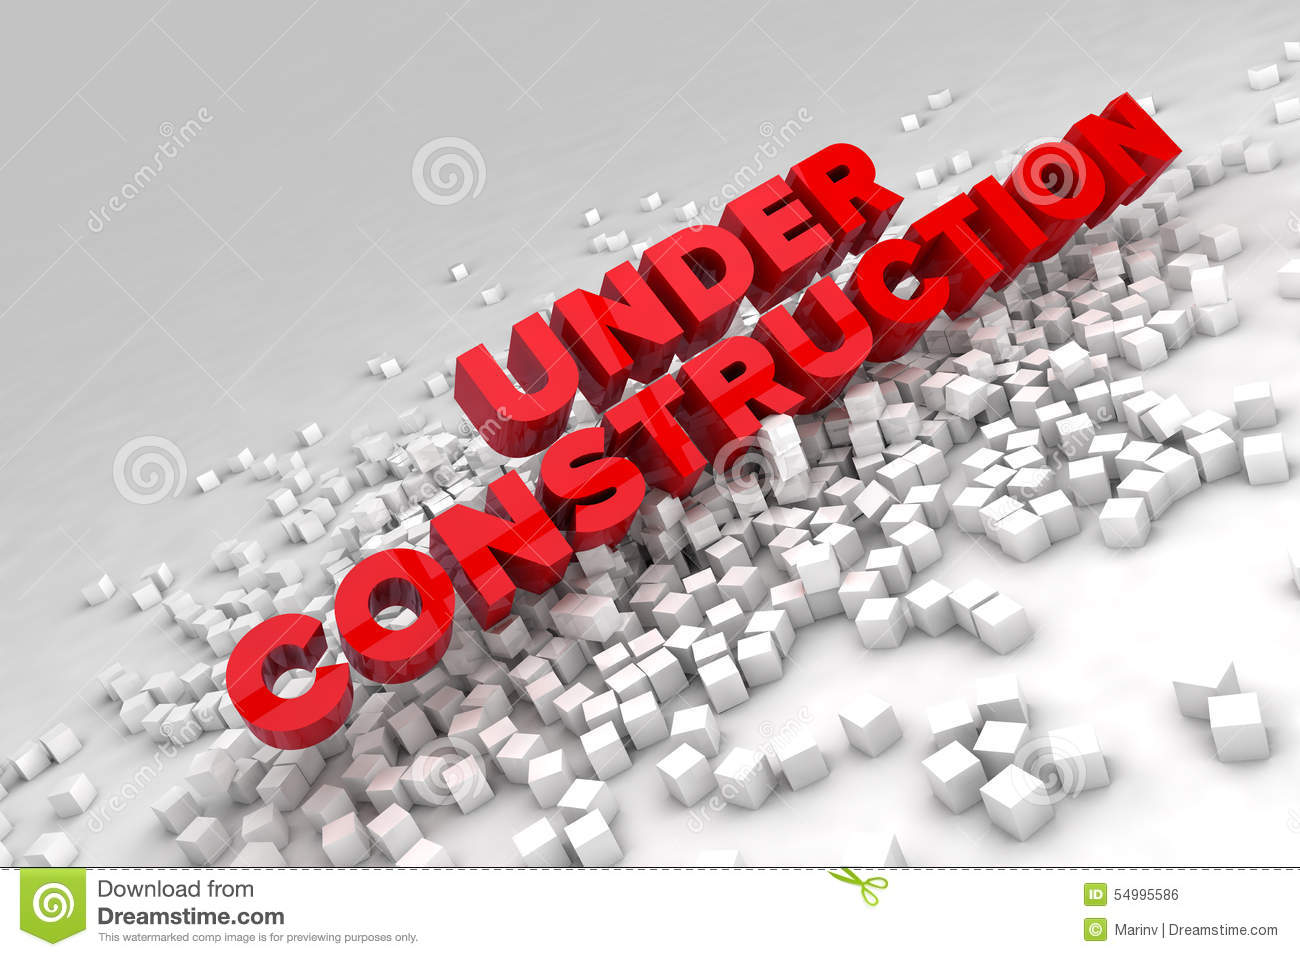 Under construction sign with blocks of cubes